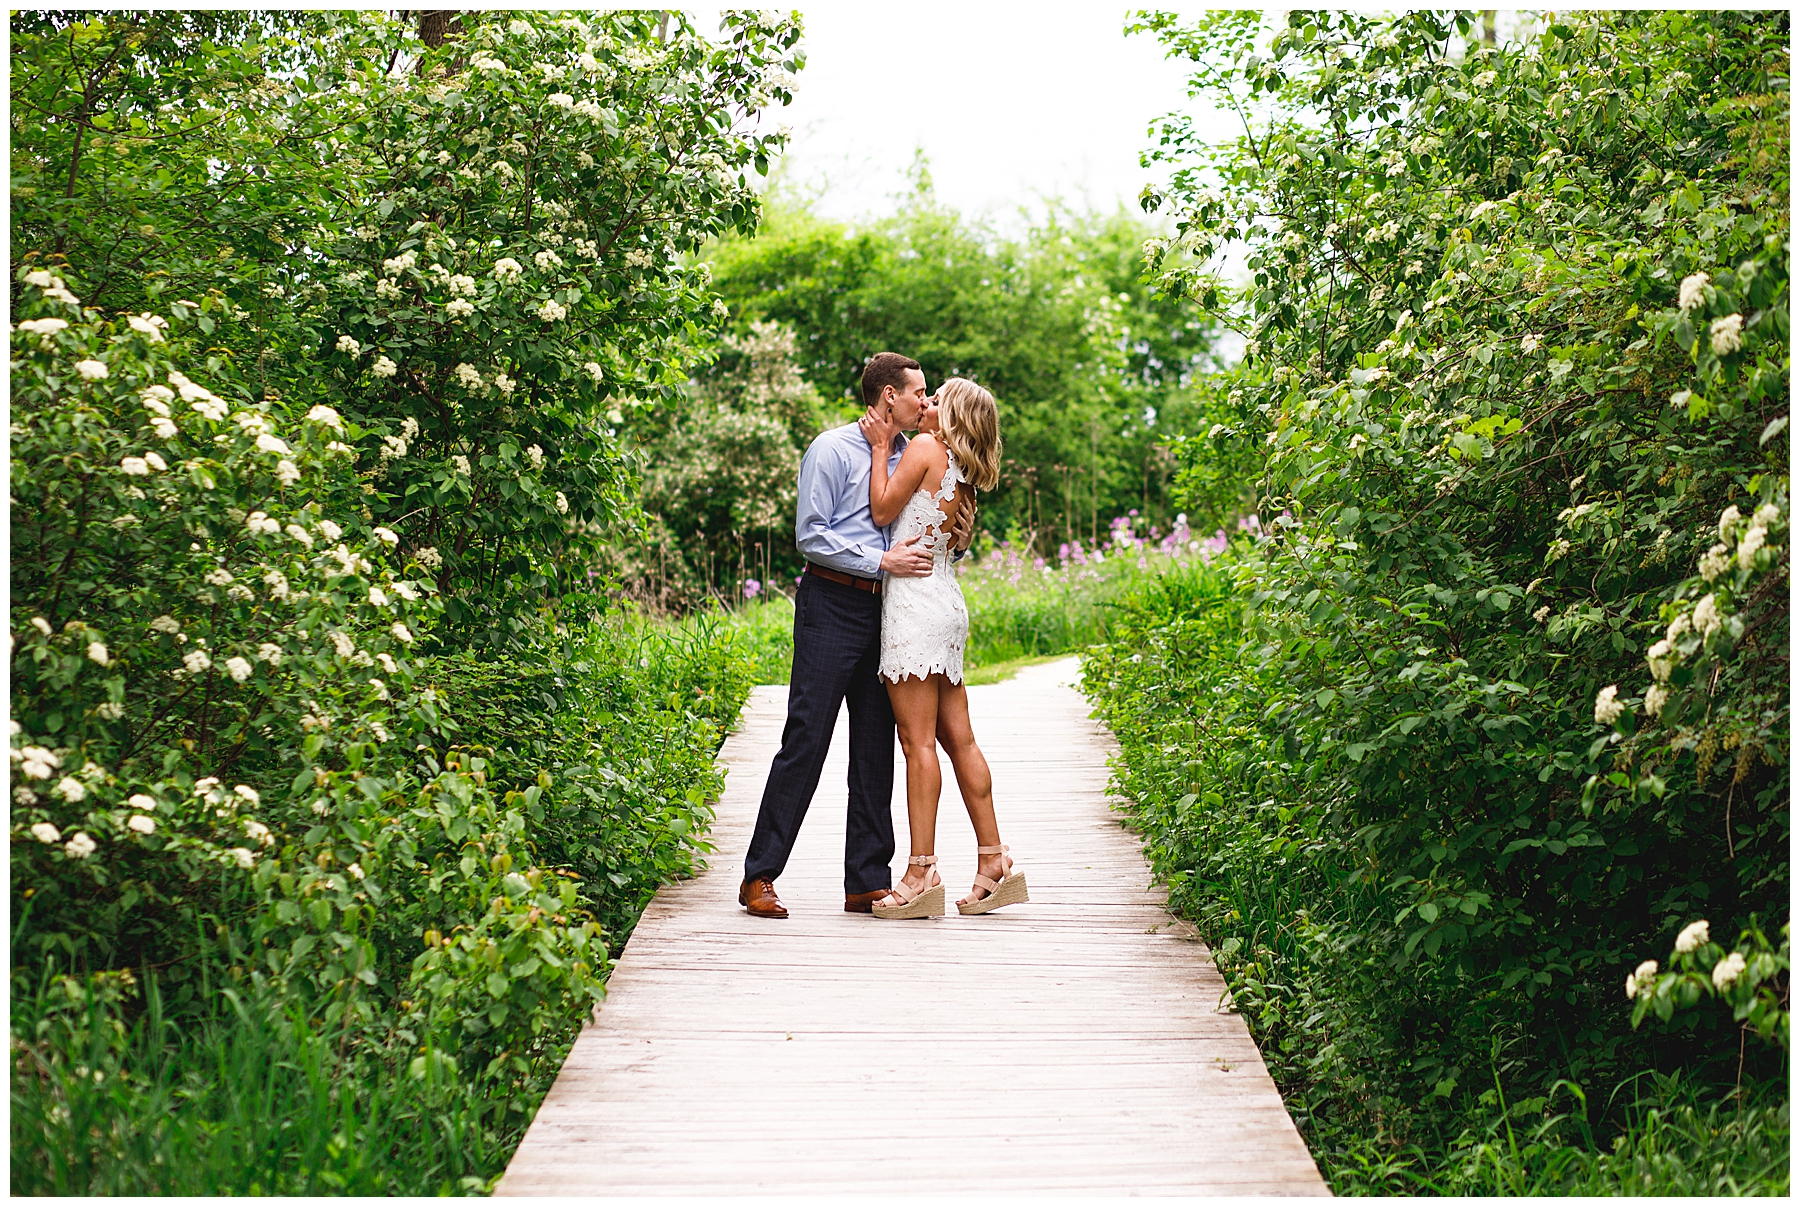 Summer embrace in the marsh - Chelsea Matson Photography